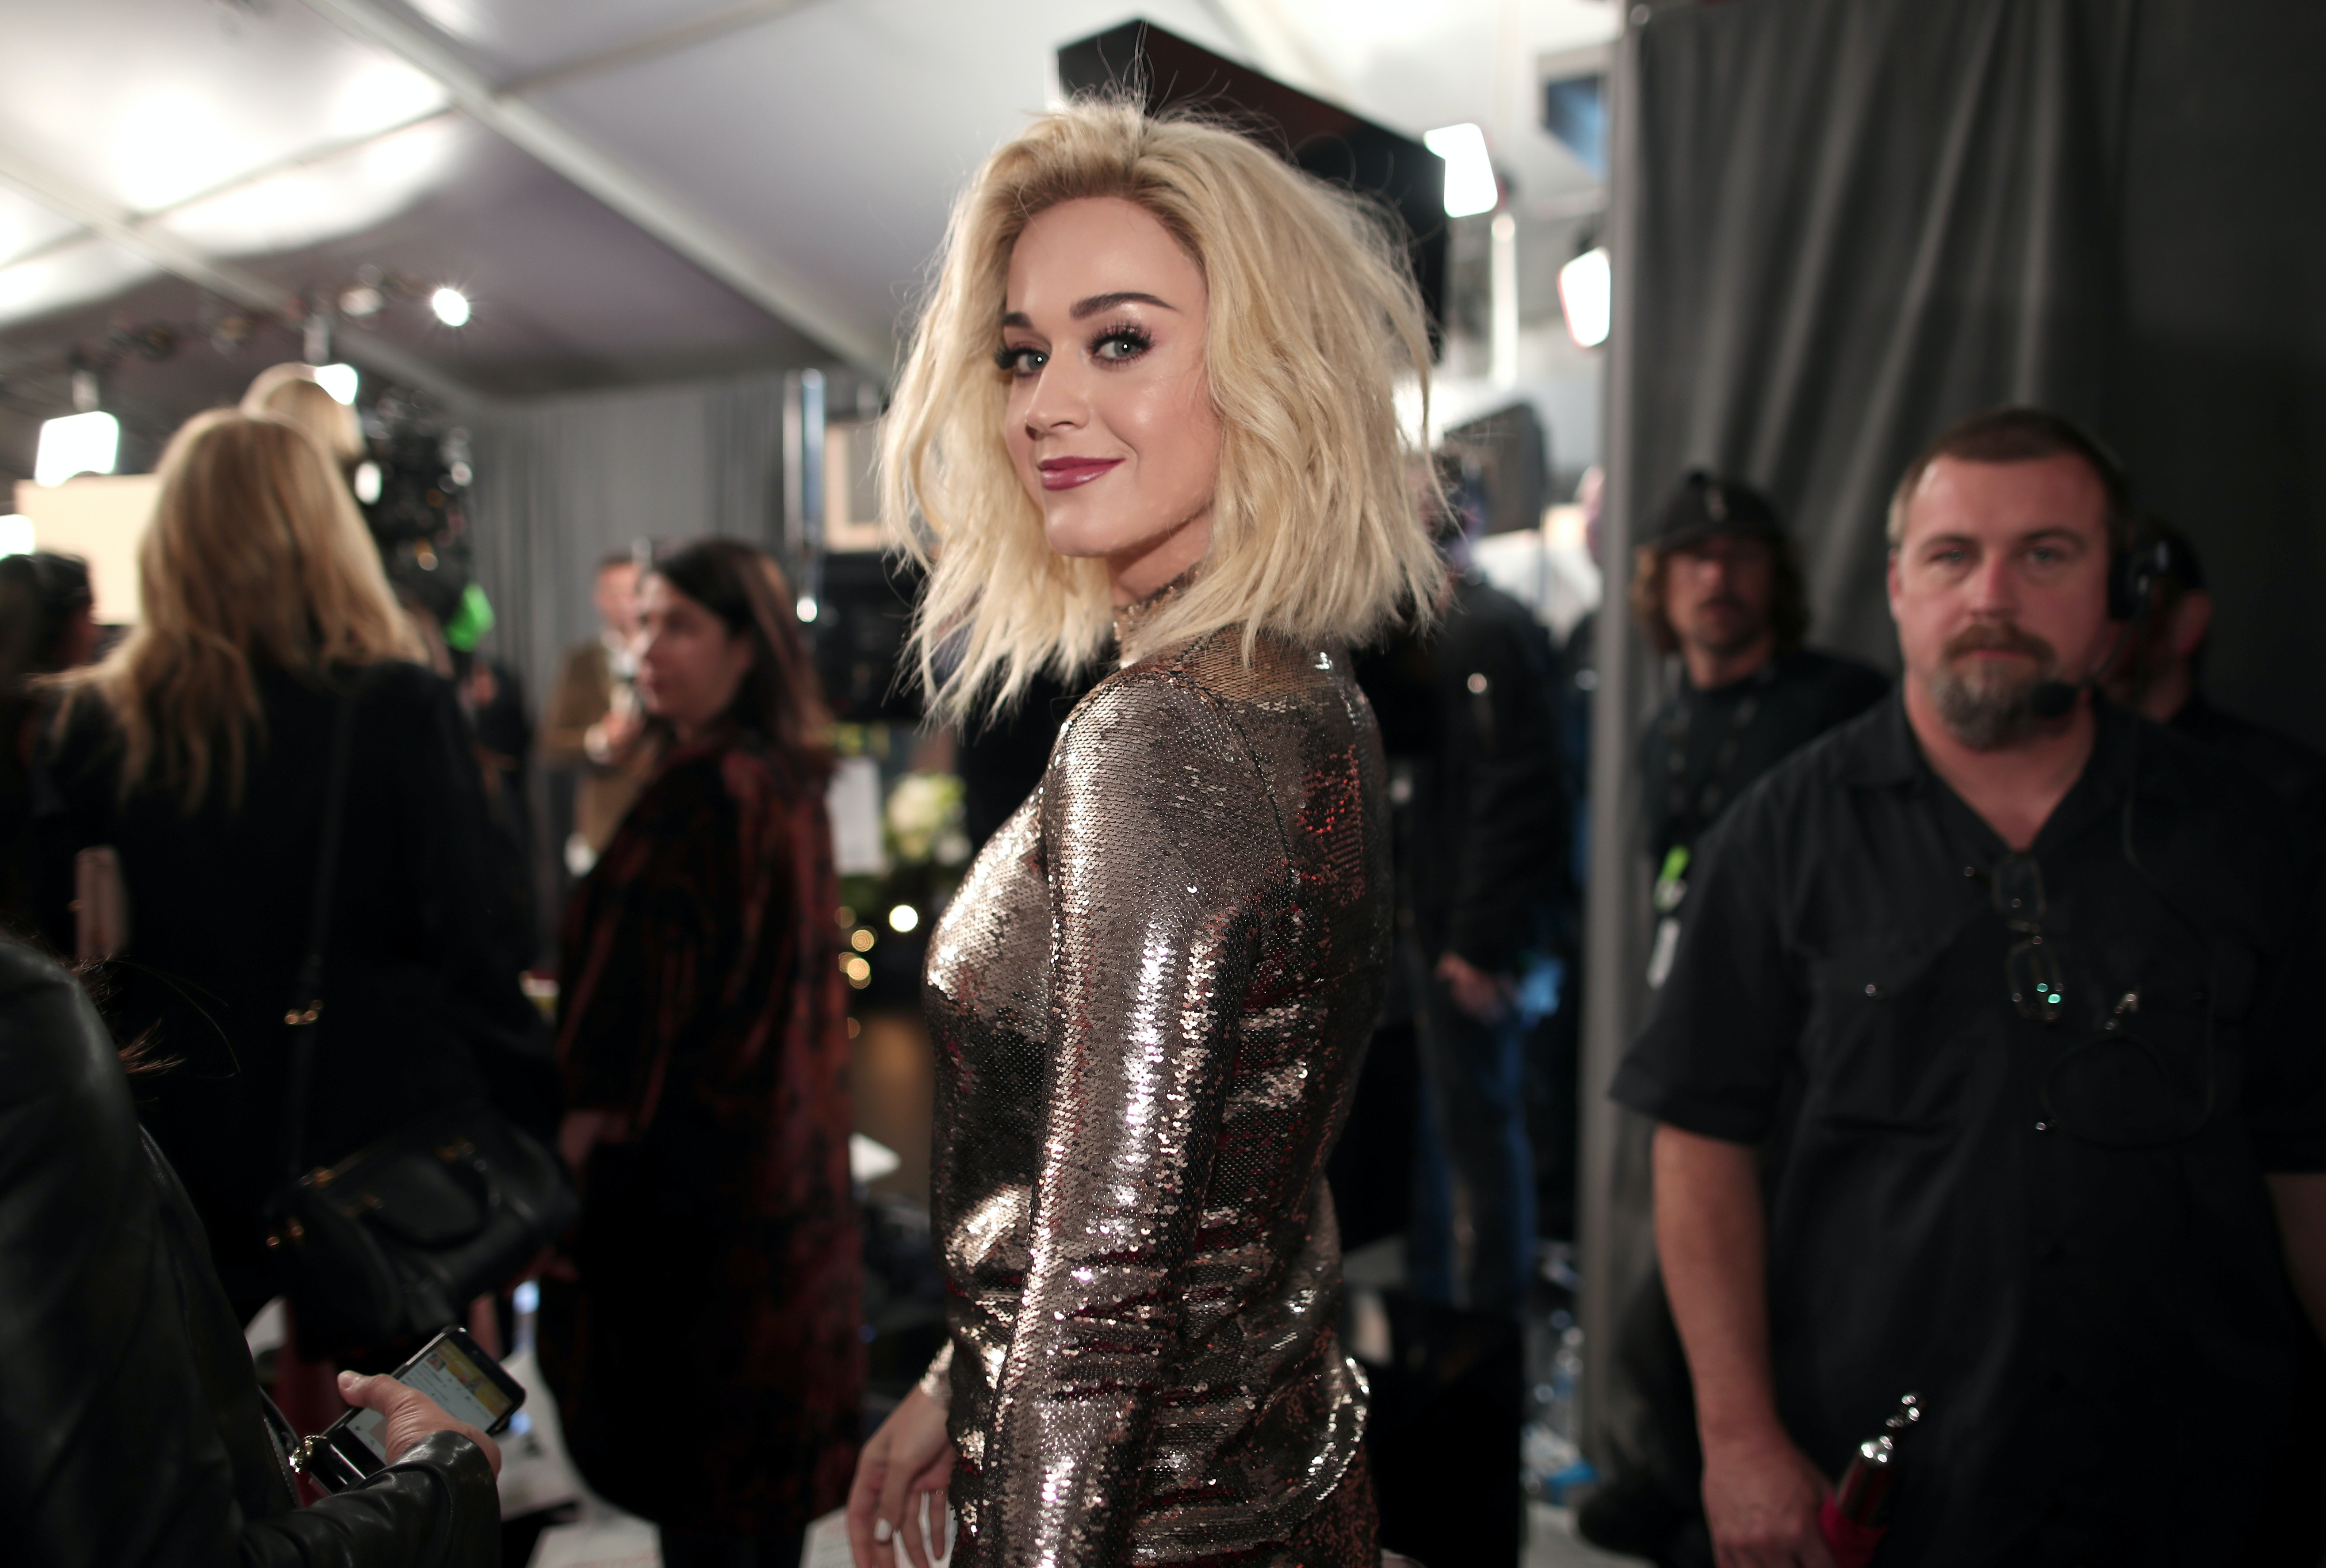 Katy Perry under fire for dissing Britney Spears, joking about mental health